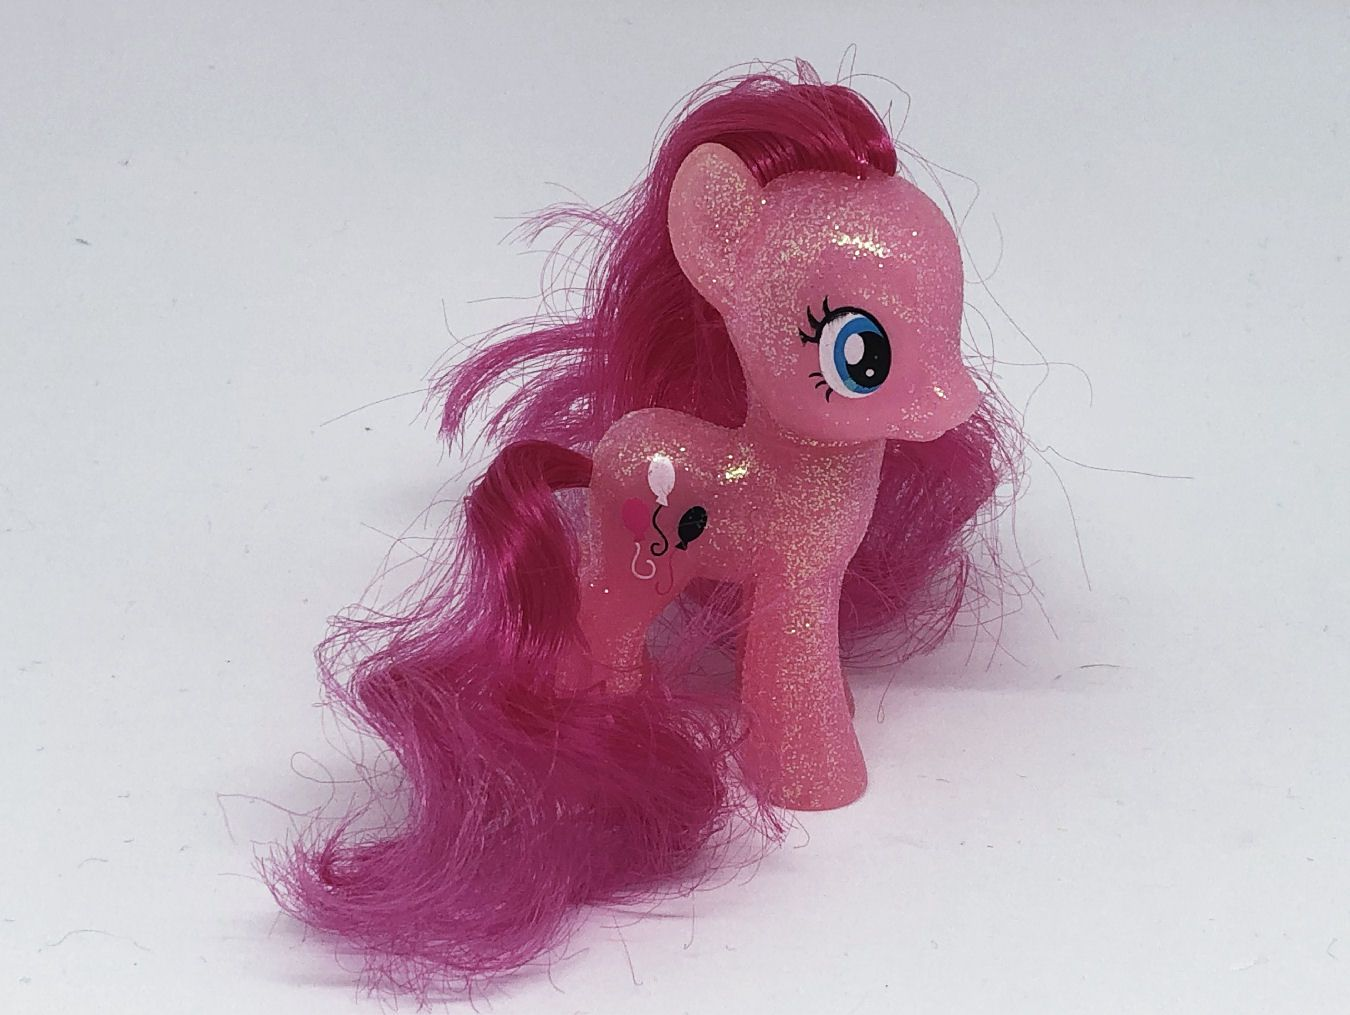 Pinkie Pie (Pinkie Pie's Boutique Sparkle)